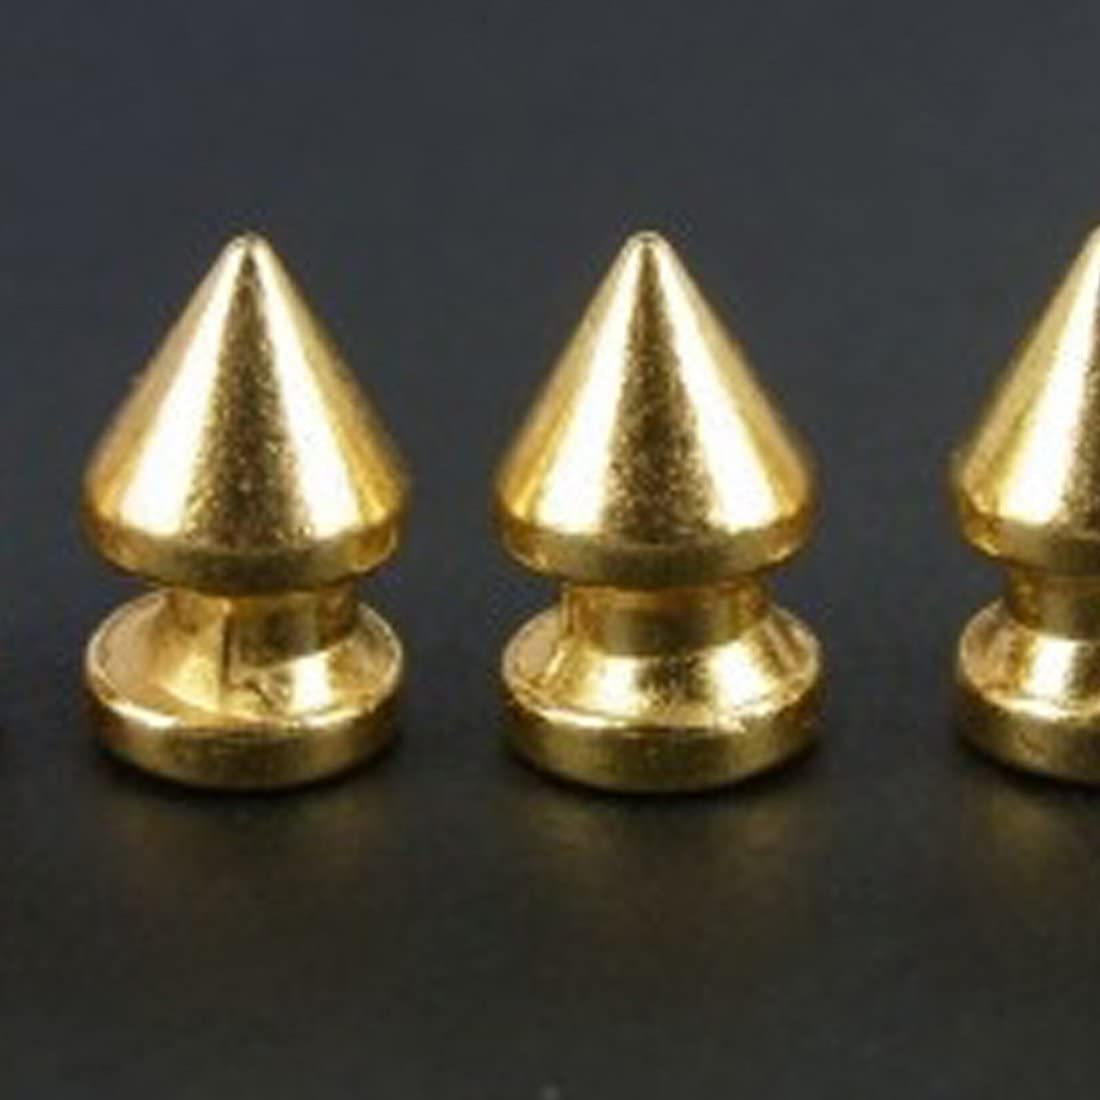 RUBYCA 12MM 20 Sets Metal Tree Spikes and Studs Metallic Screw-Back for DIY Punk Leather-Craft Black